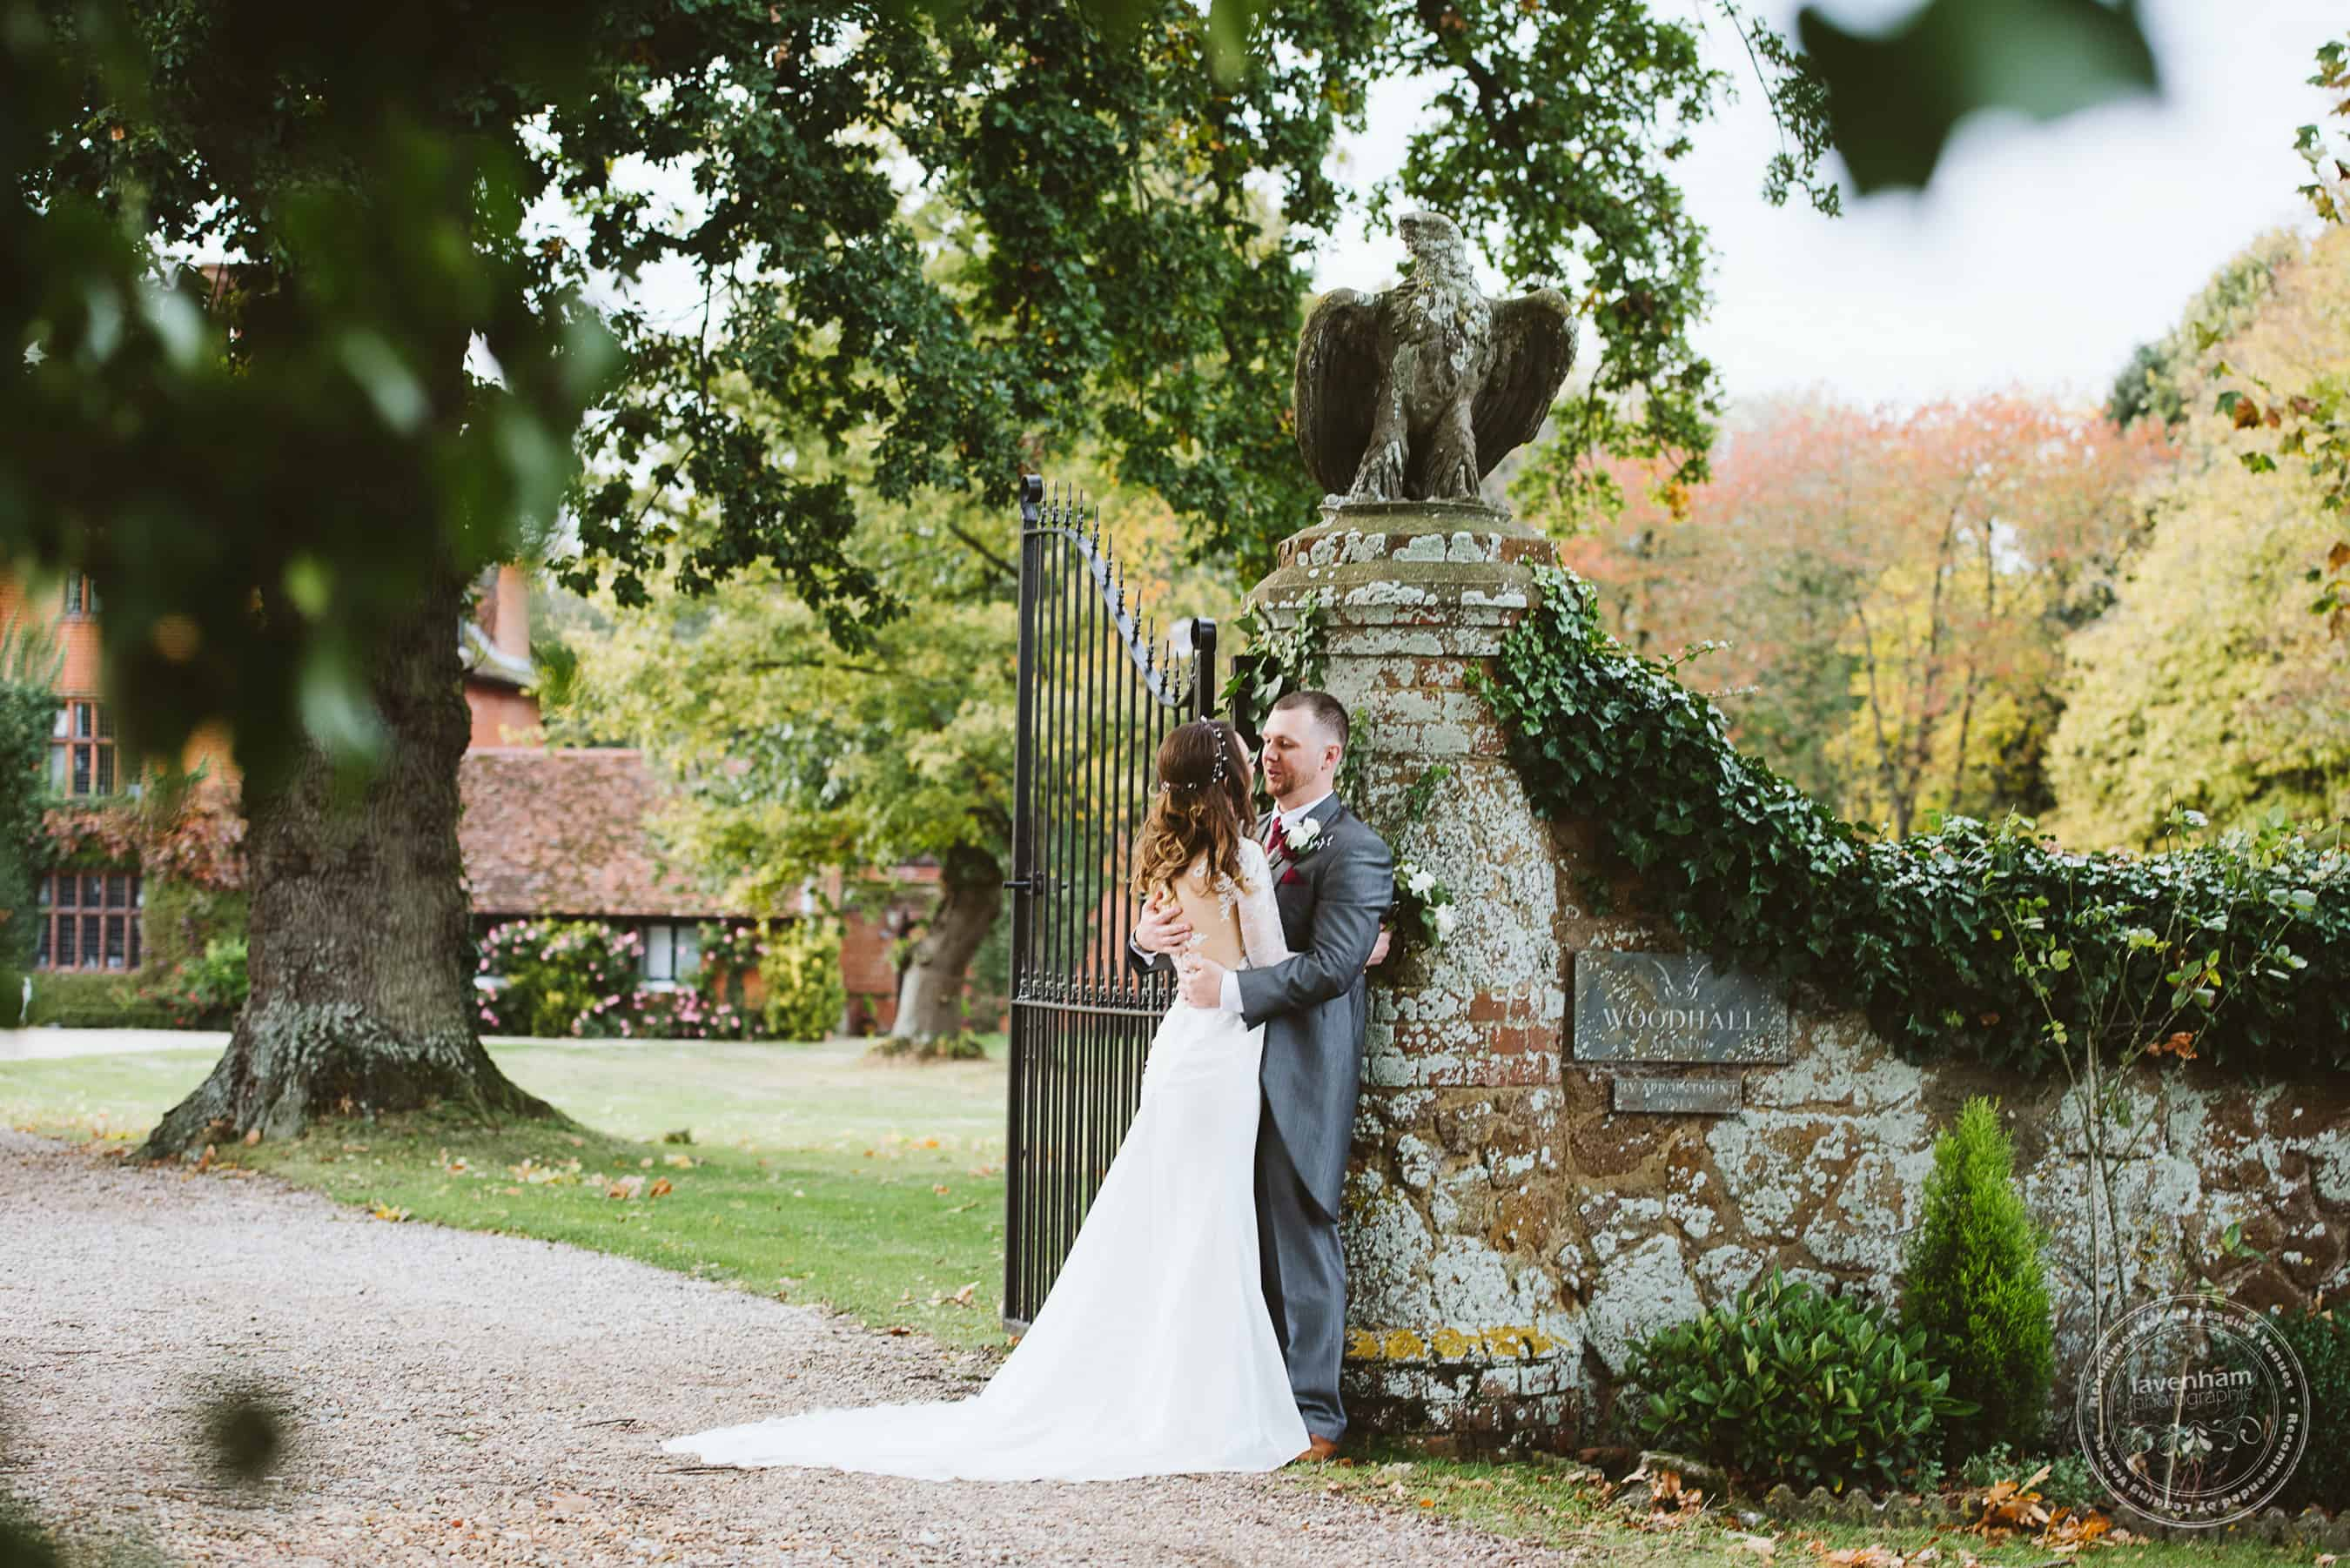 041118 Woodhall Manor Wedding Photography by Lavenham Photographic 093